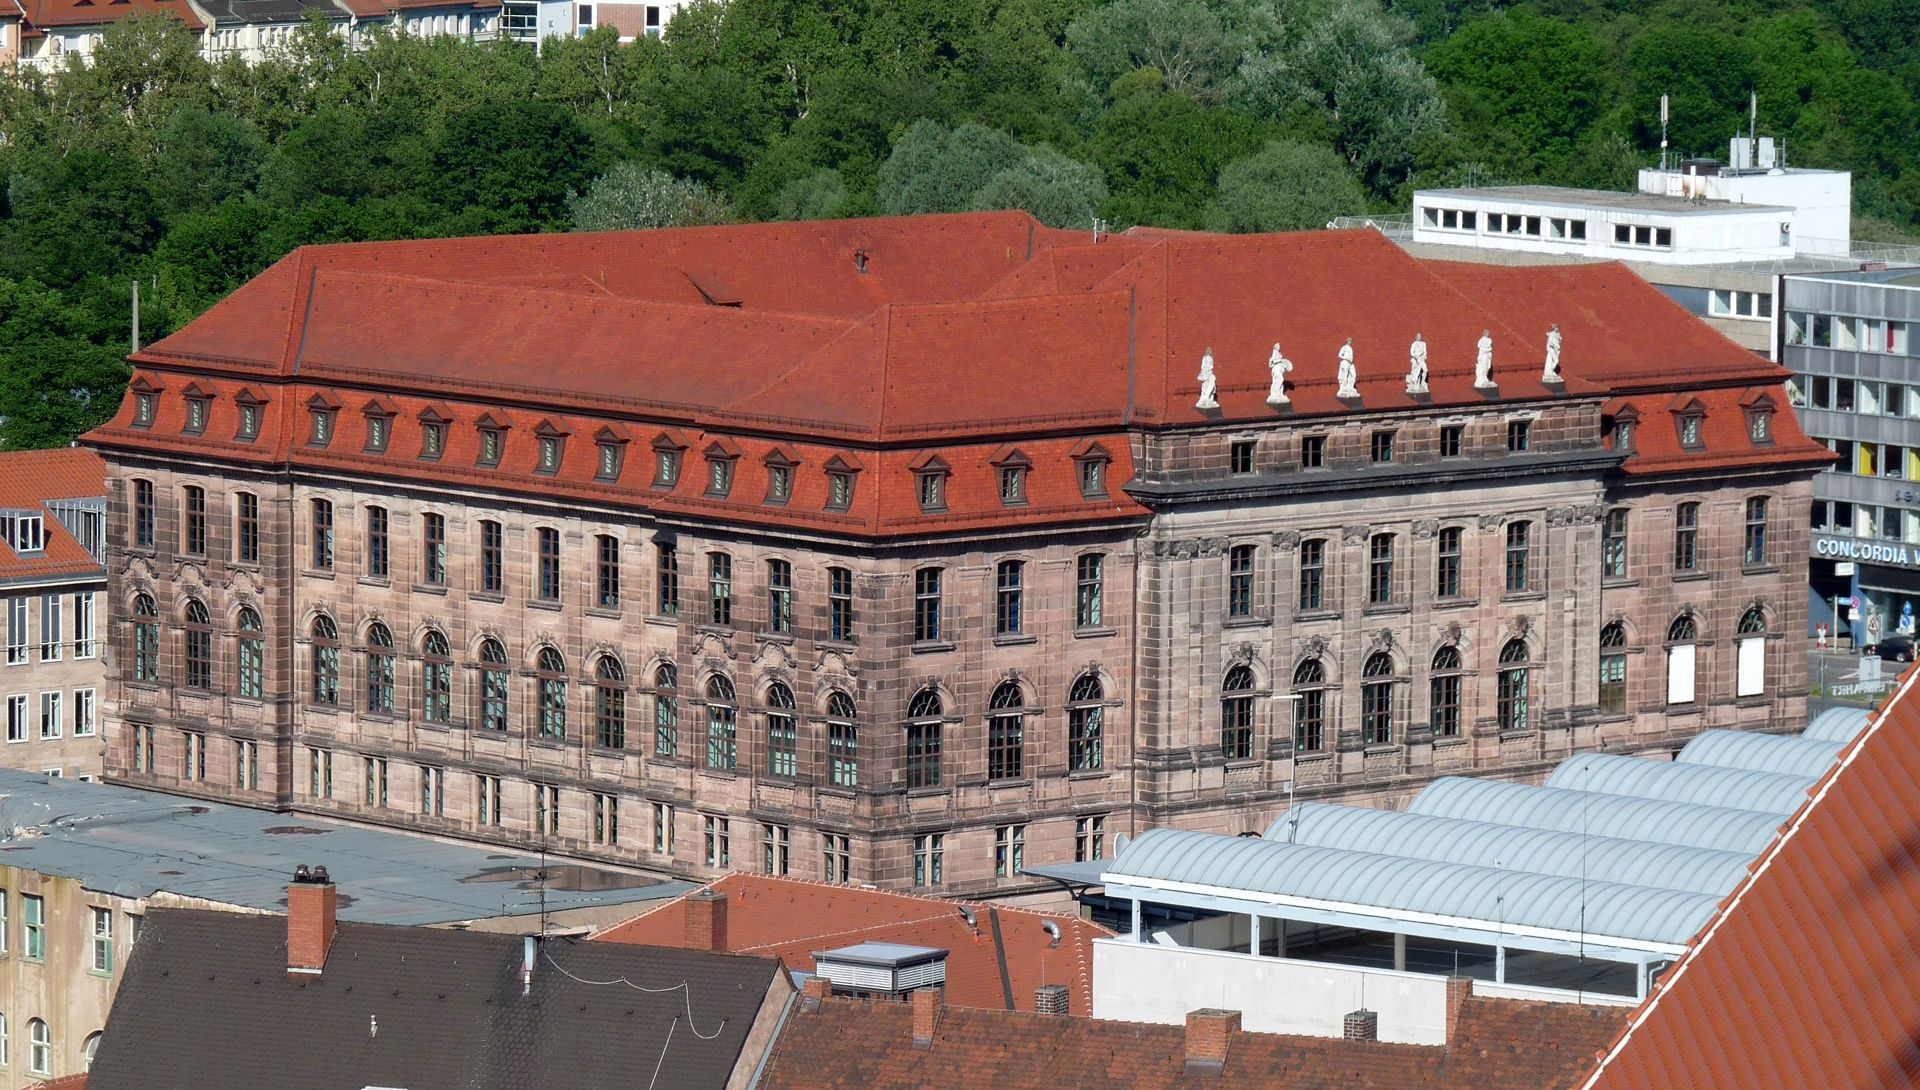 Former Bavarian Trade and Business Institute (Landesgewerbeanstalt) South view